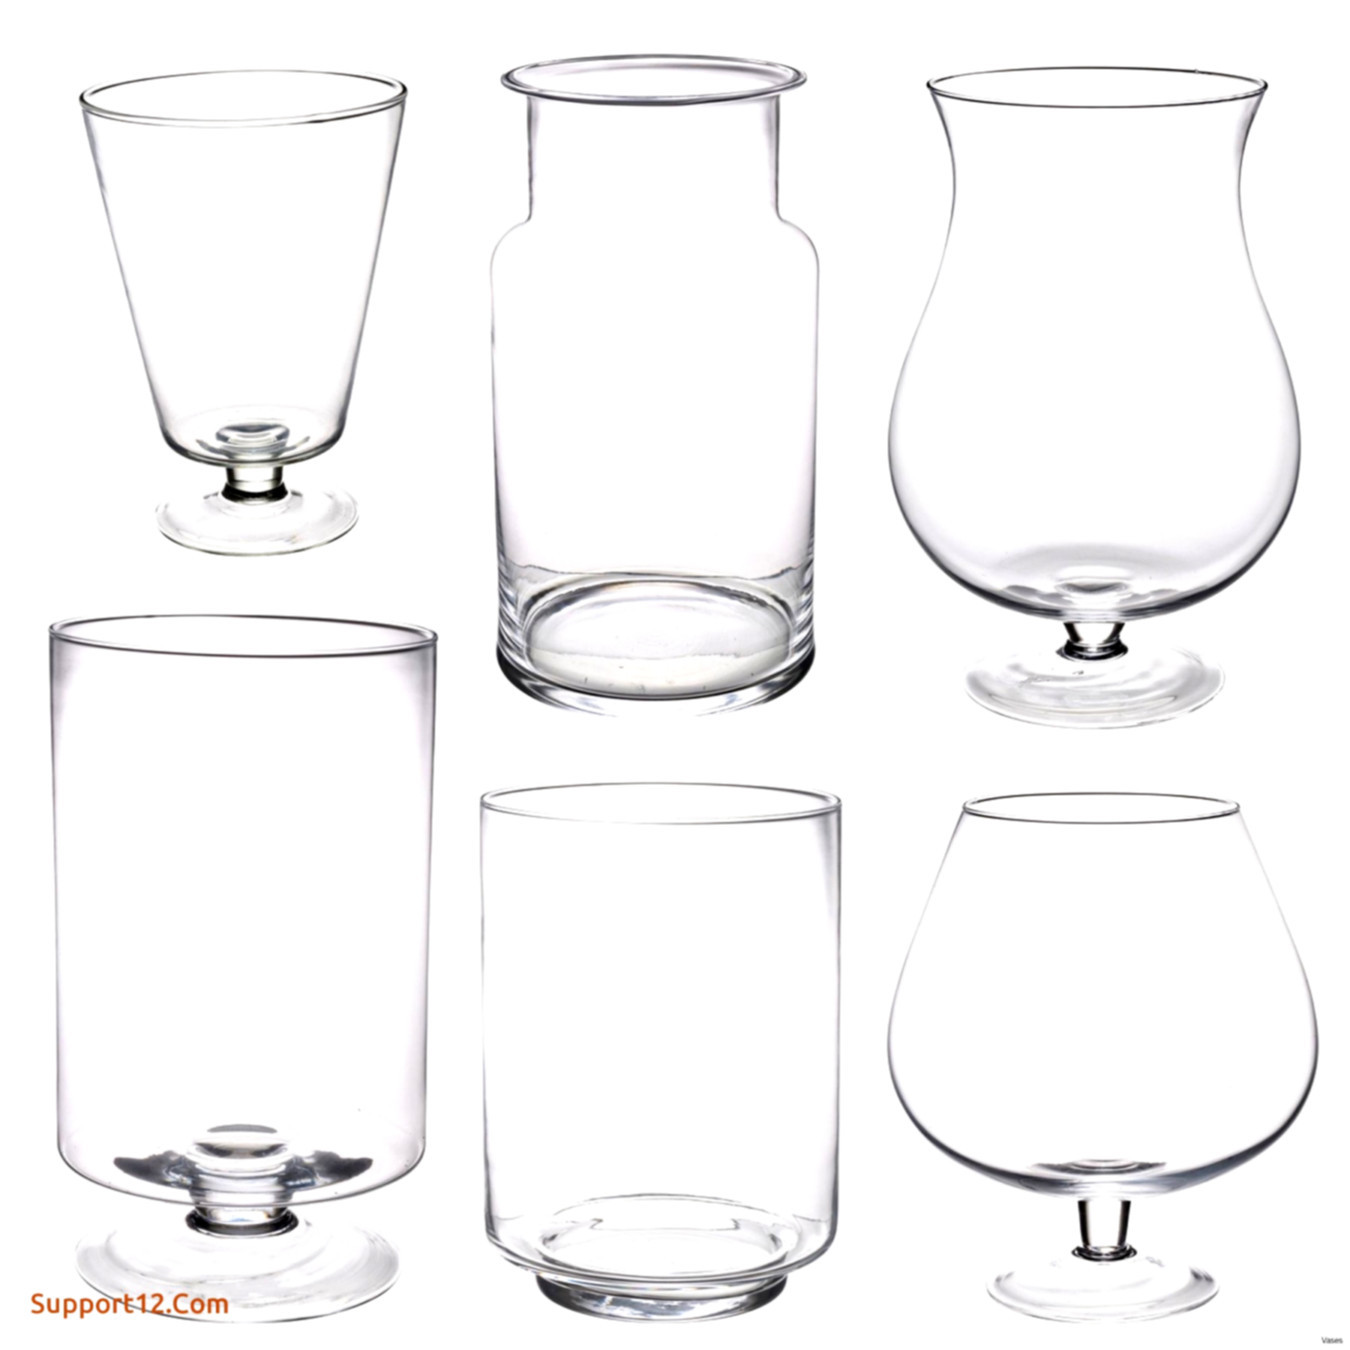 18 Lovely Crystal Vase Price 2021 free download crystal vase price of seven simple but important things to remember about square vases inside bulk glass vases wilmingtonncbeerweek